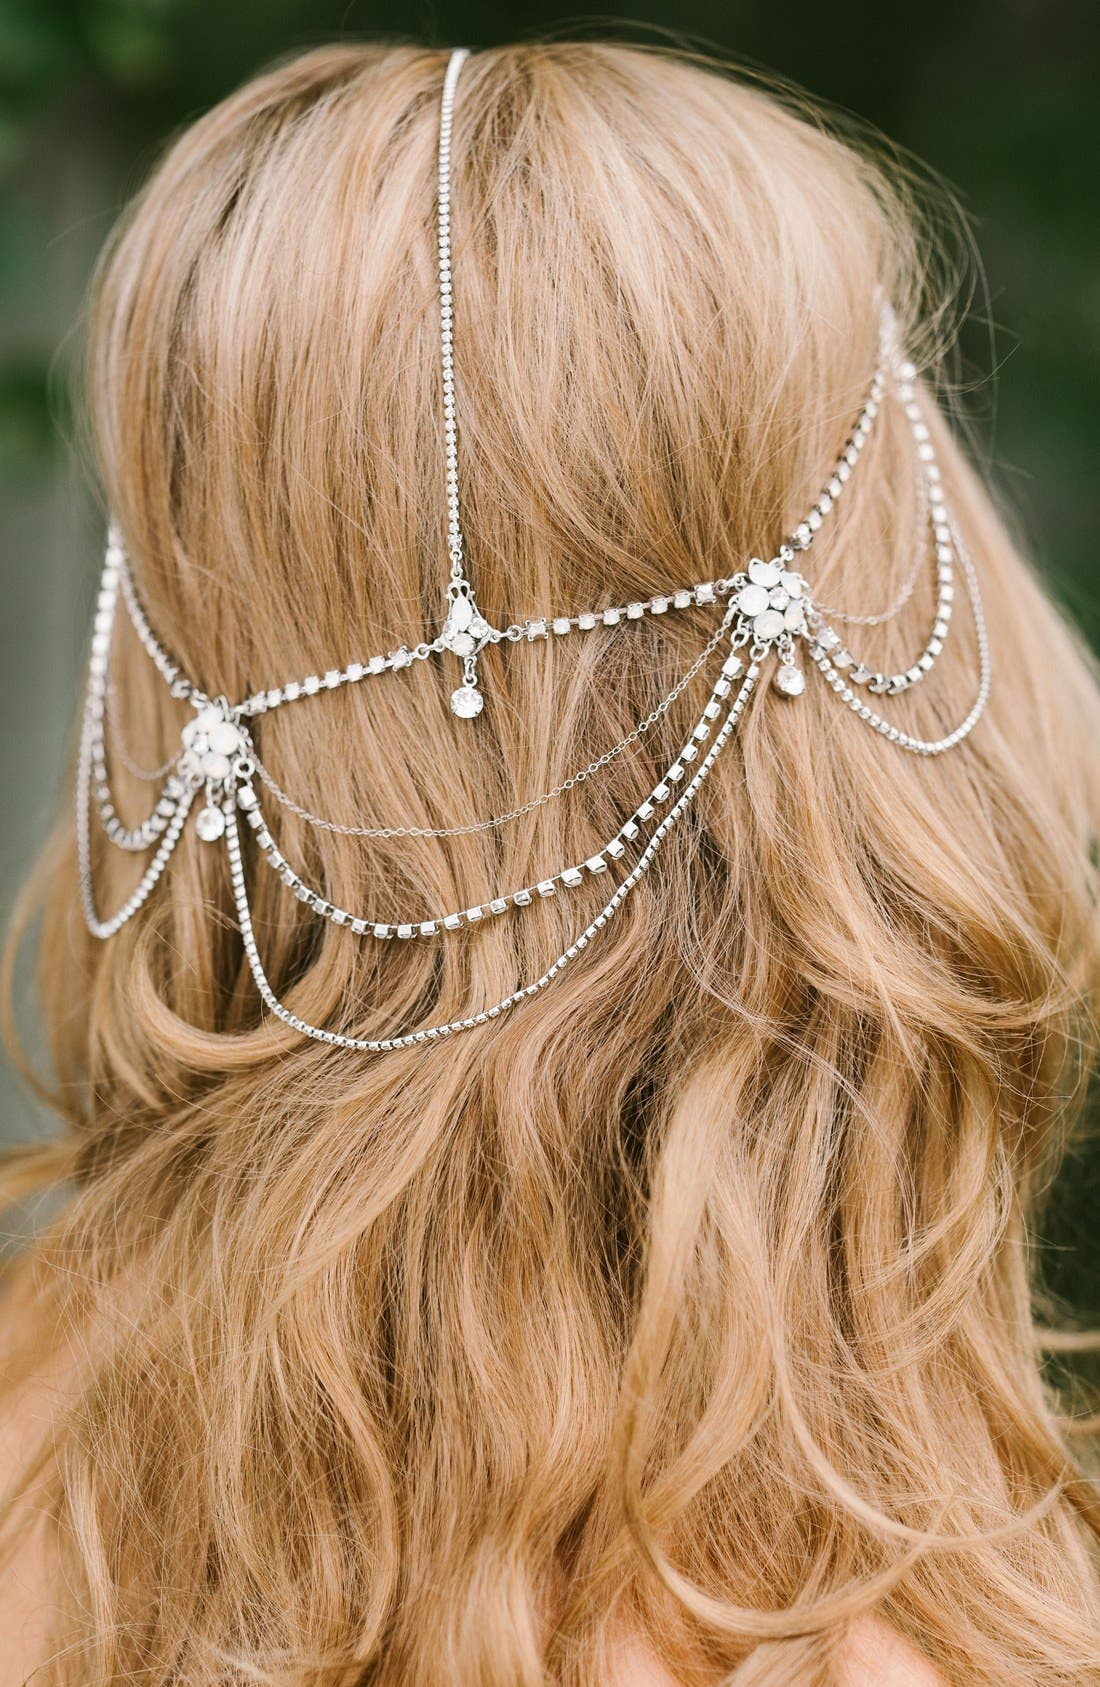 'Madeline' Floral Crystal Hair Chain,                             Alternate thumbnail 3, color,                             040